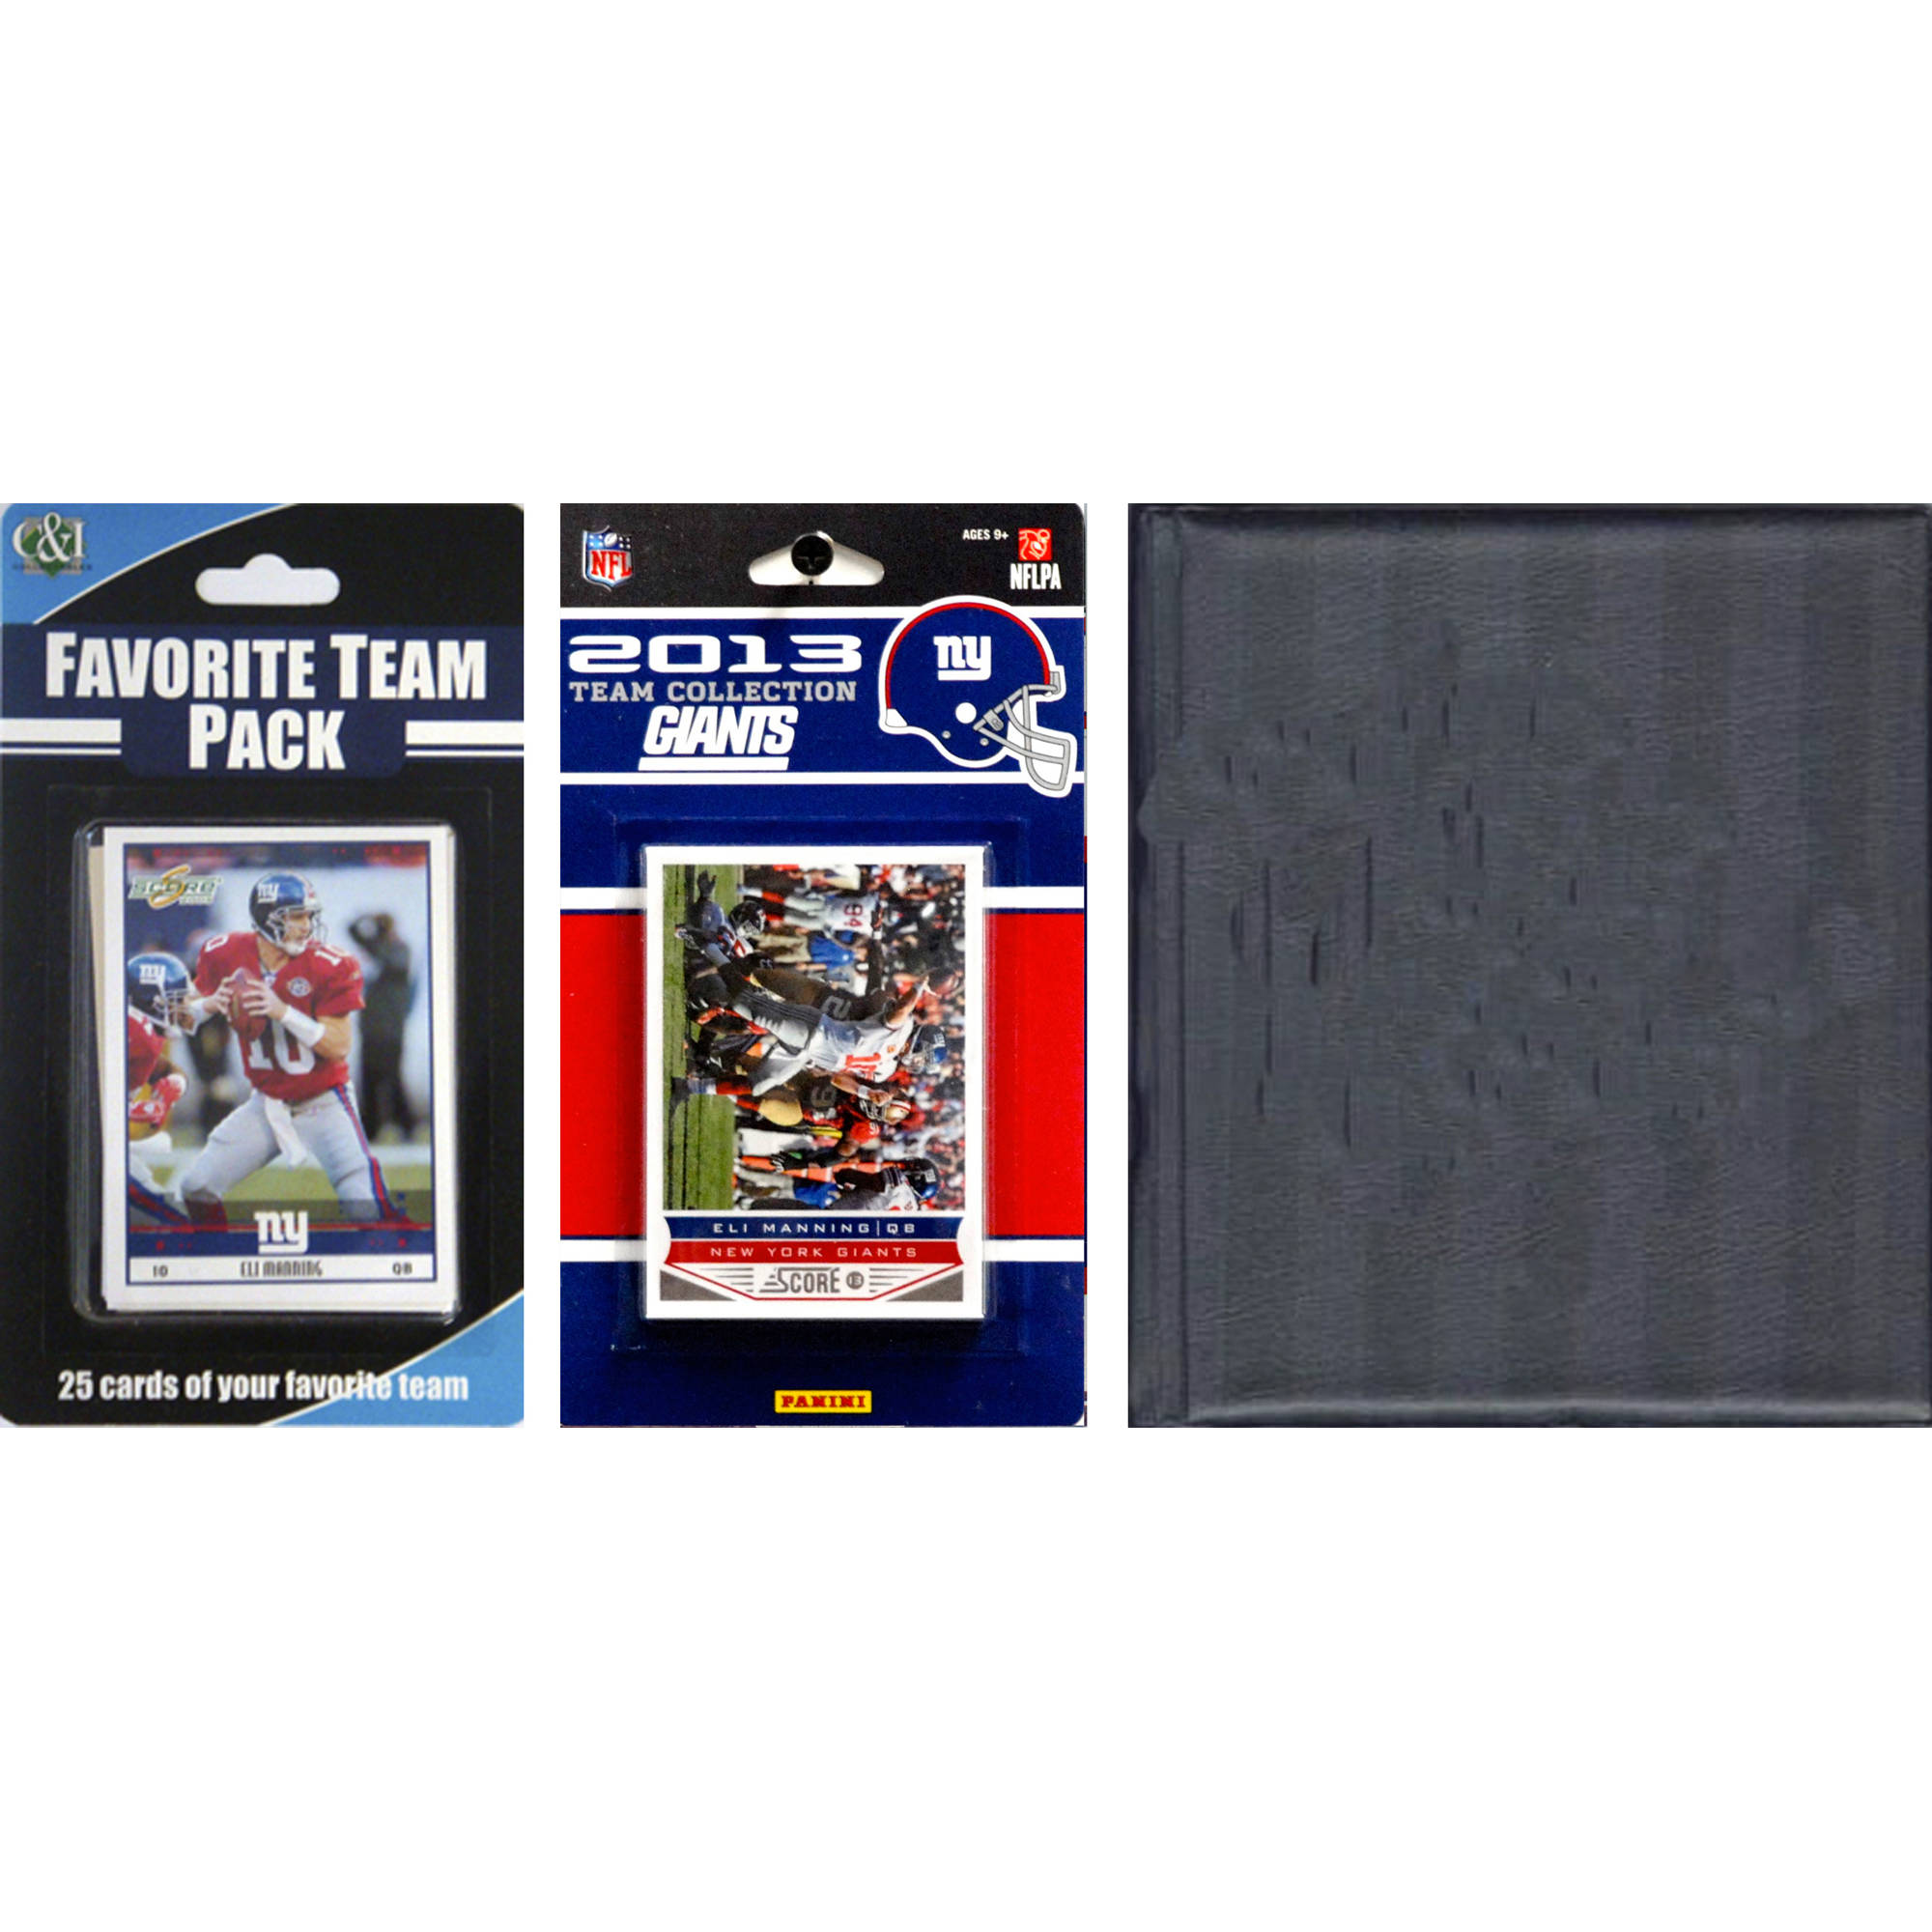 C&I Collectables NFL New York Giants Licensed 2013 Score Team Set and Favorite Player Trading Card Pack Plus Storage Album